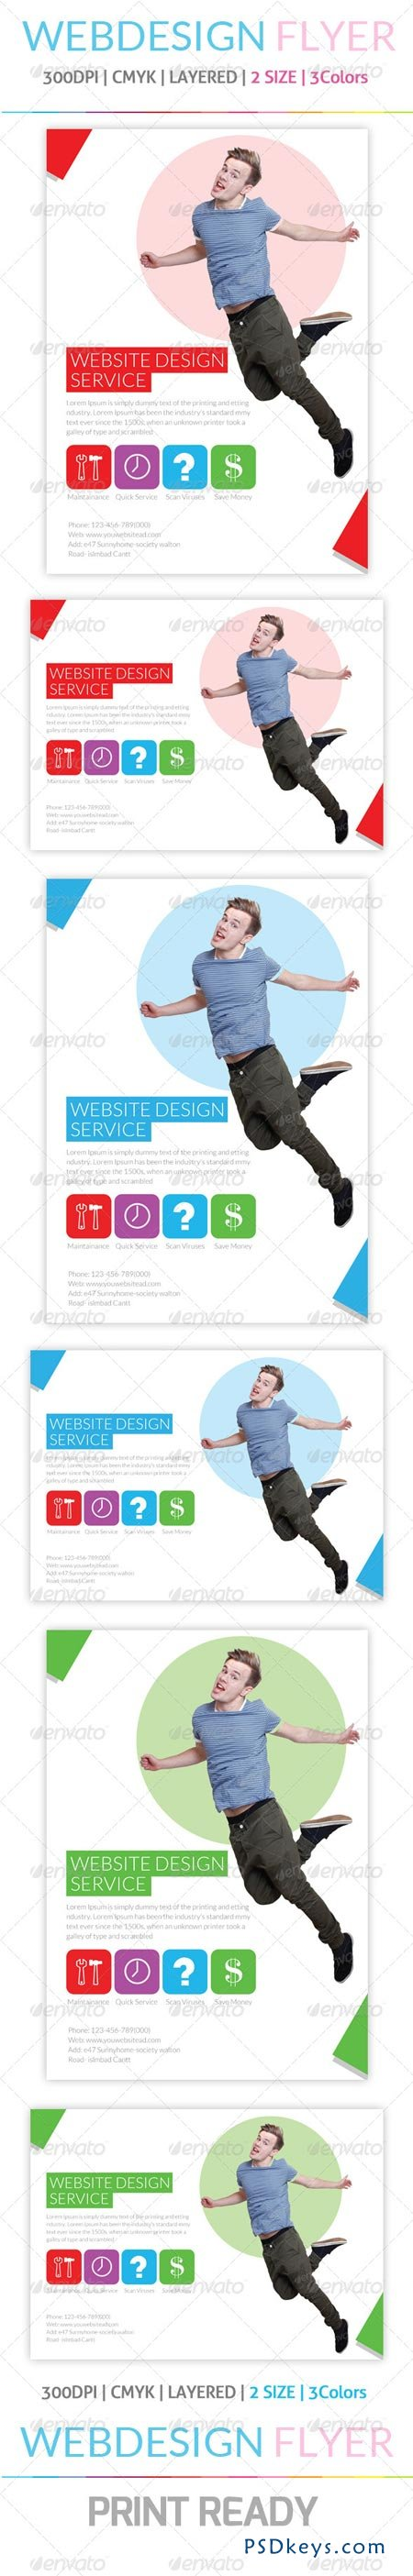 Web Design Flyer & Ad Template 6222762